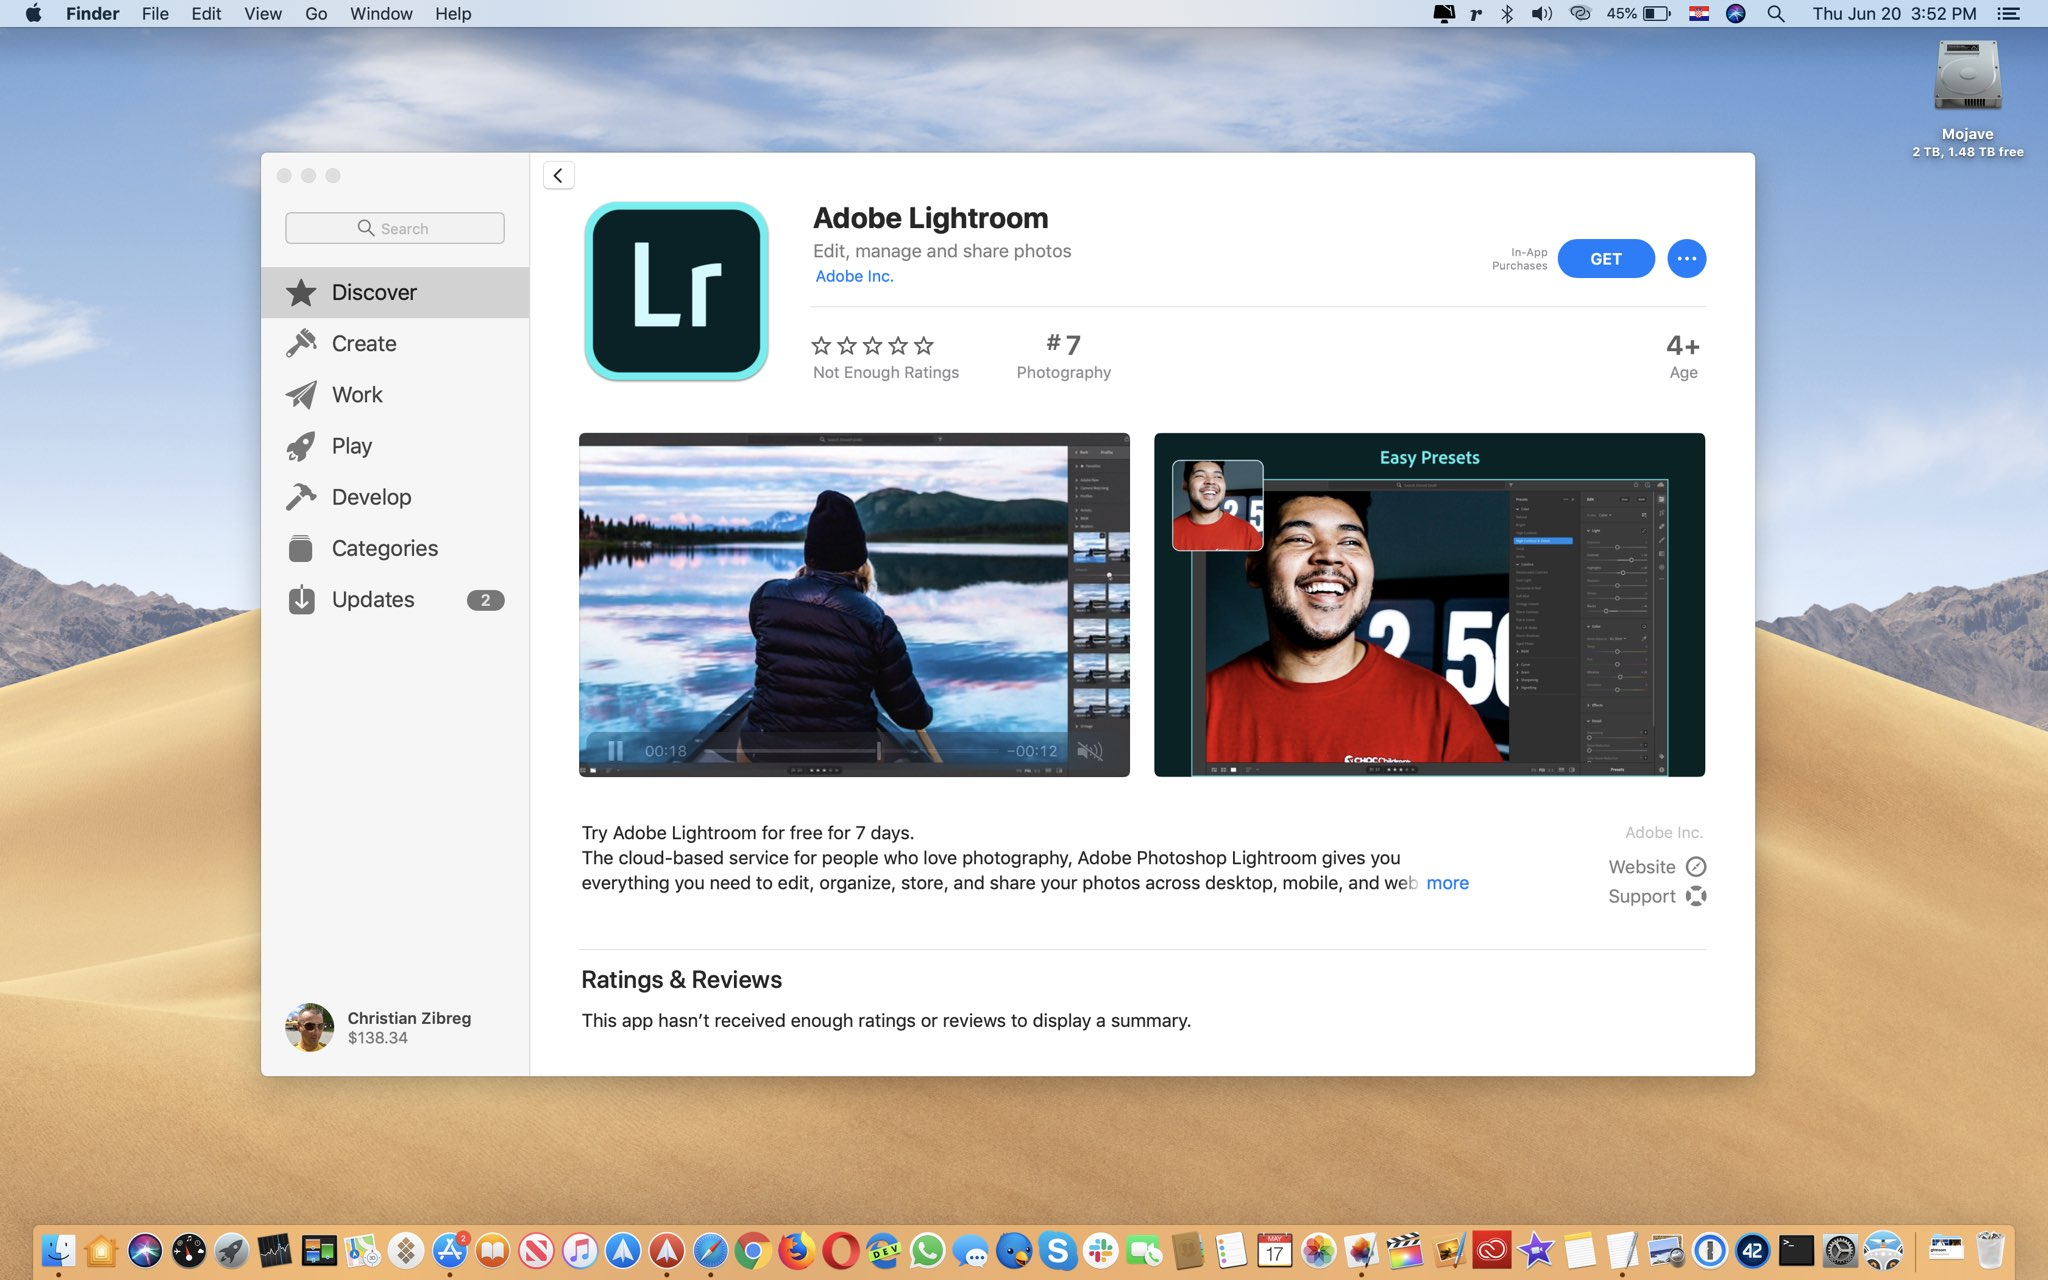 Adobe Lightroom is now available in Mac App Store